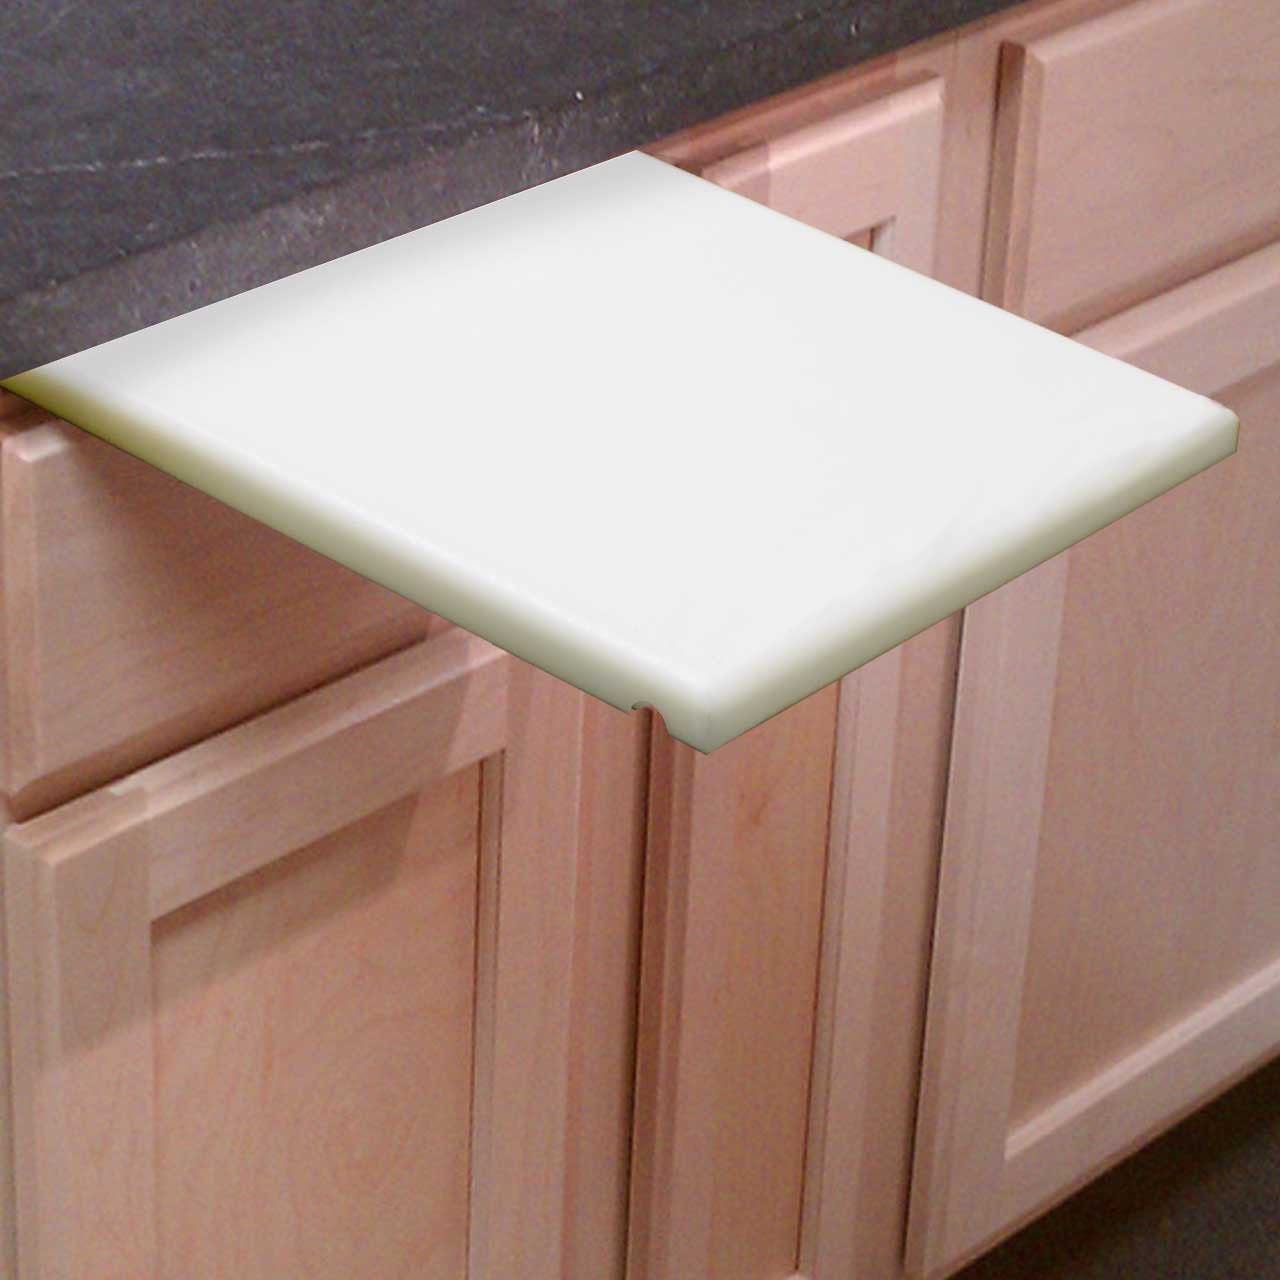 john boos kitchen islands interior design pull out white cutting board - 3/4 inch thick ...